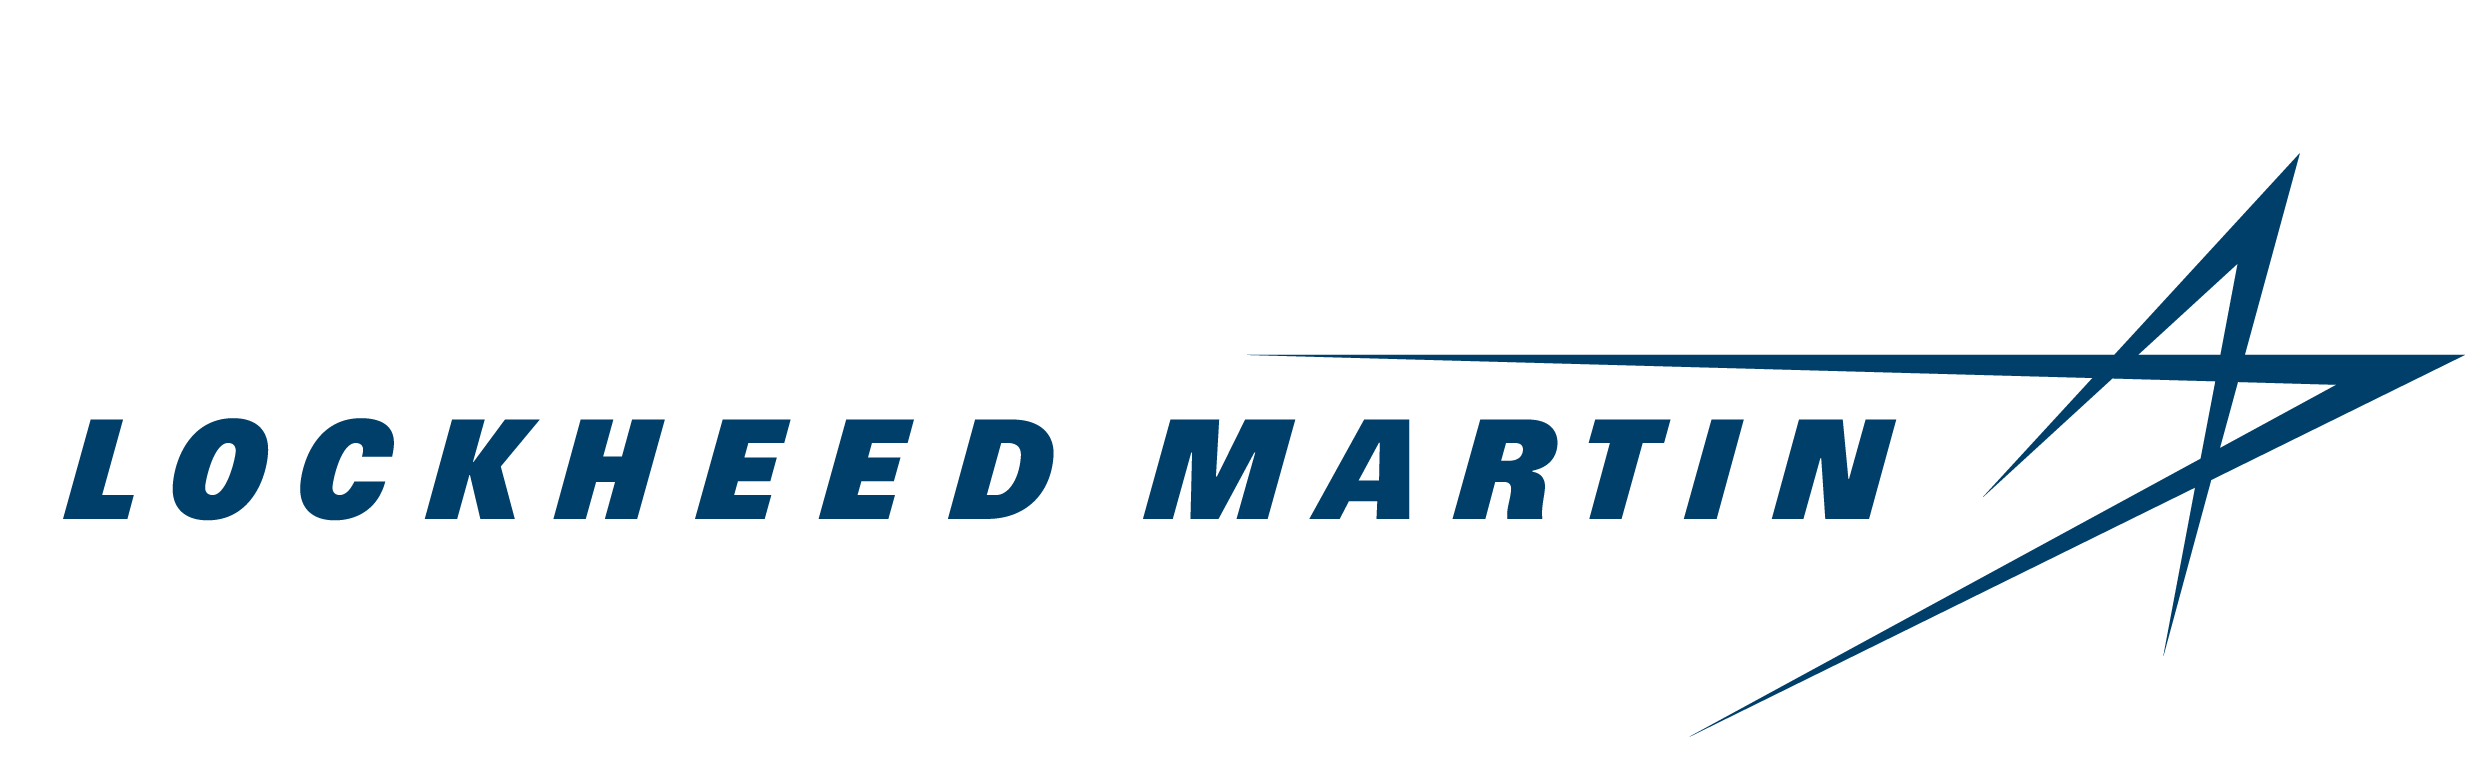 Lockheed Martin Logo dark blue